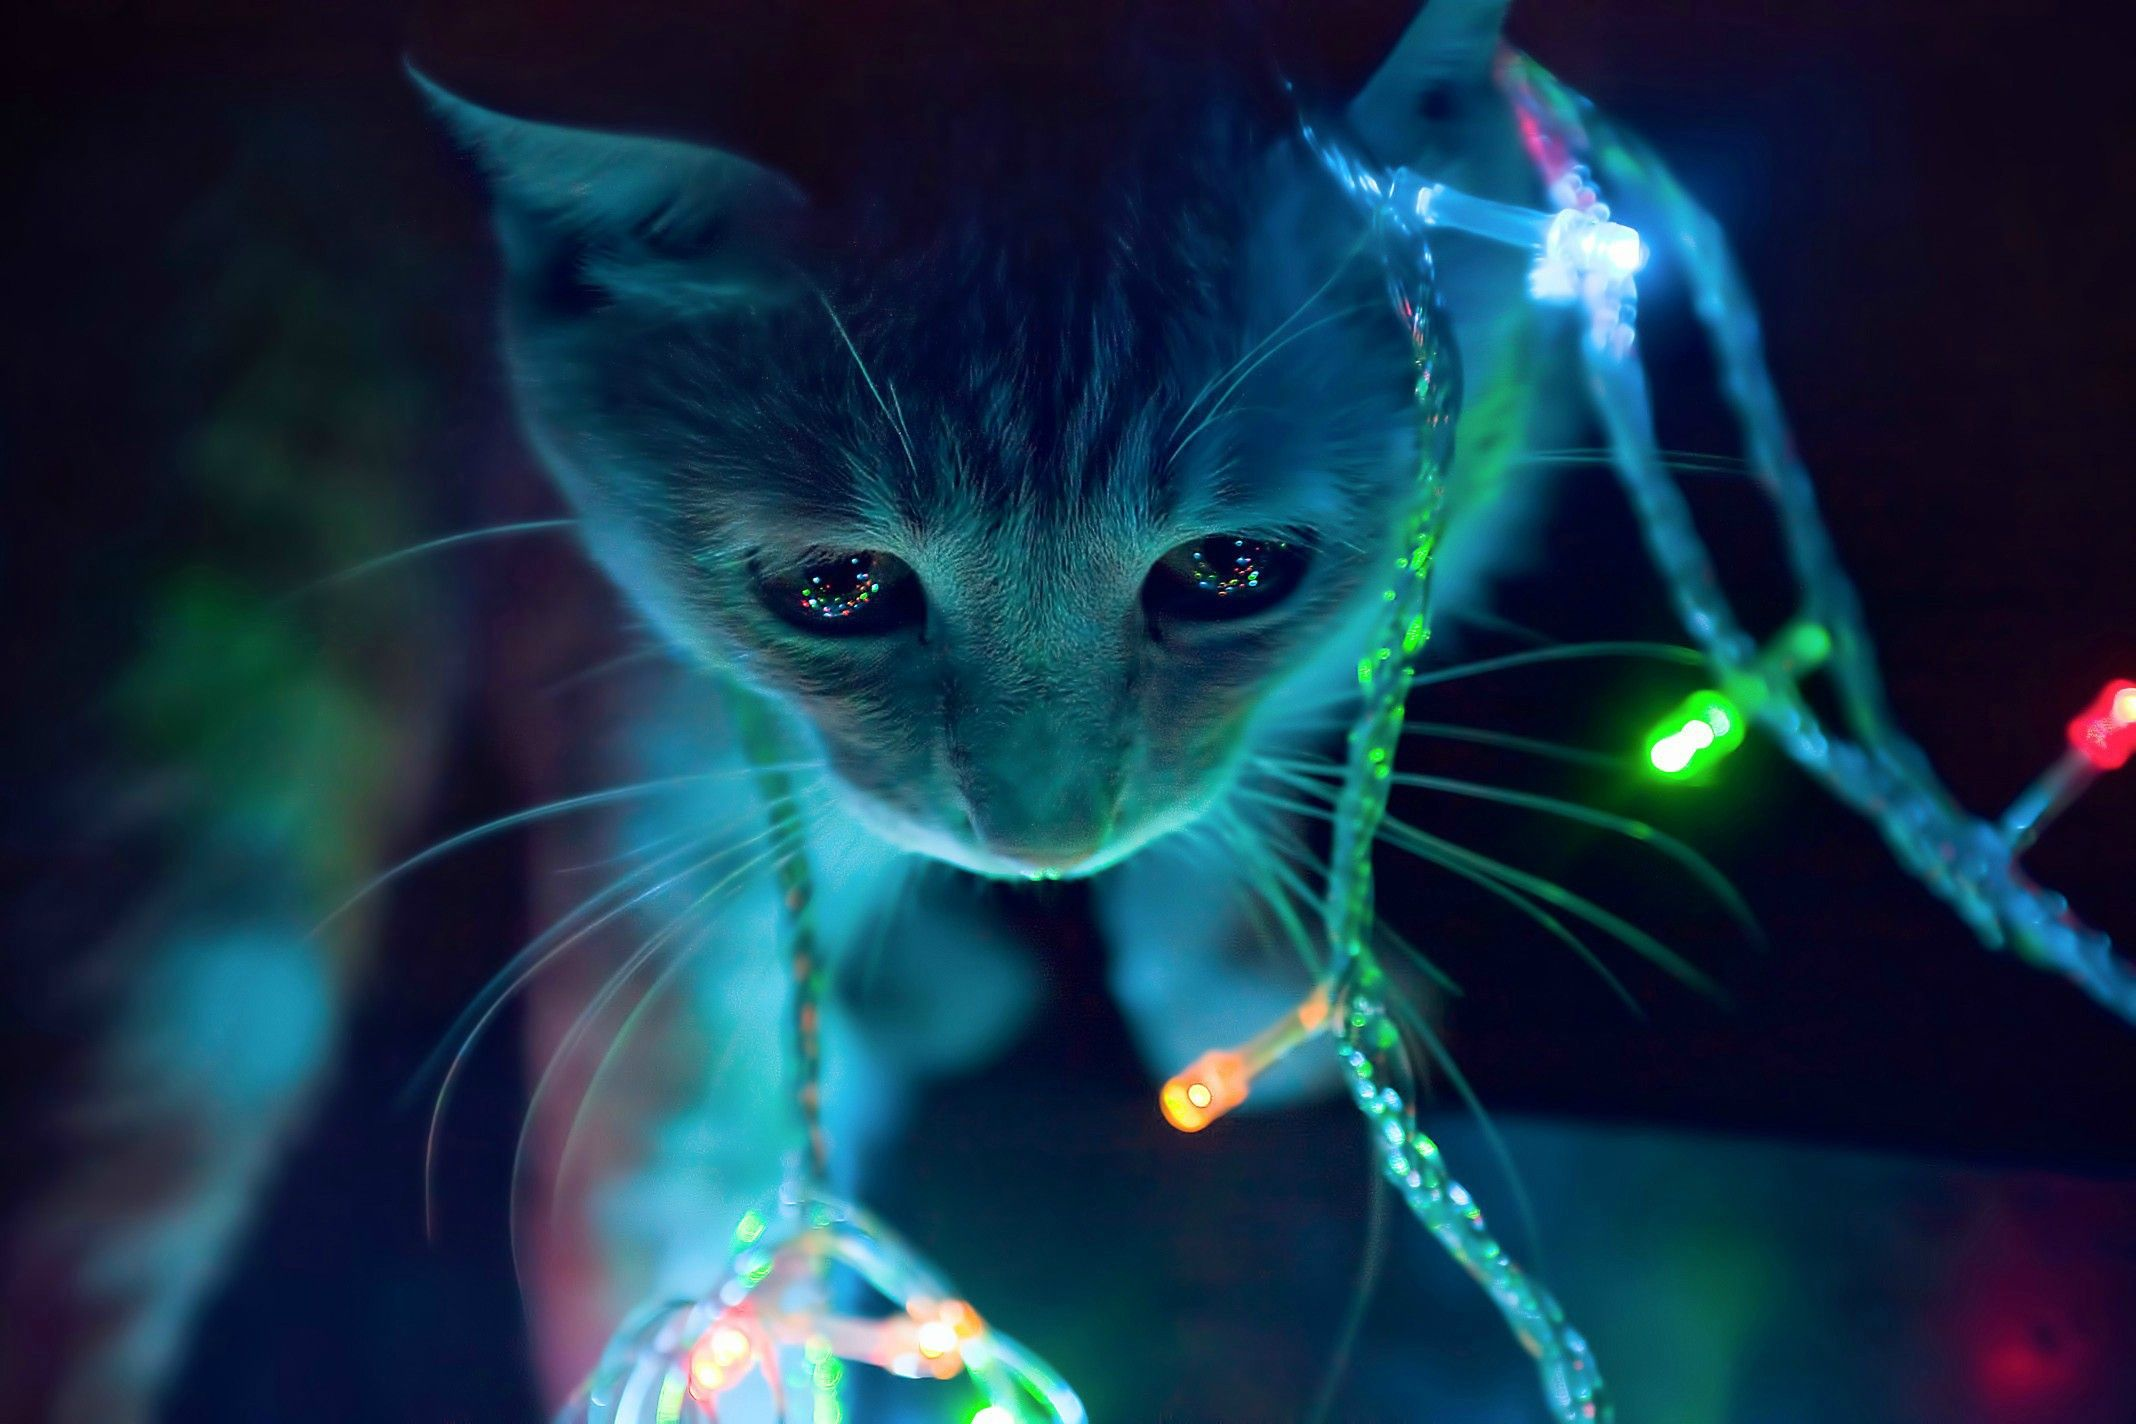 2136 x 1424. The kitten and the LEDs. | Wallpaper | Pinterest